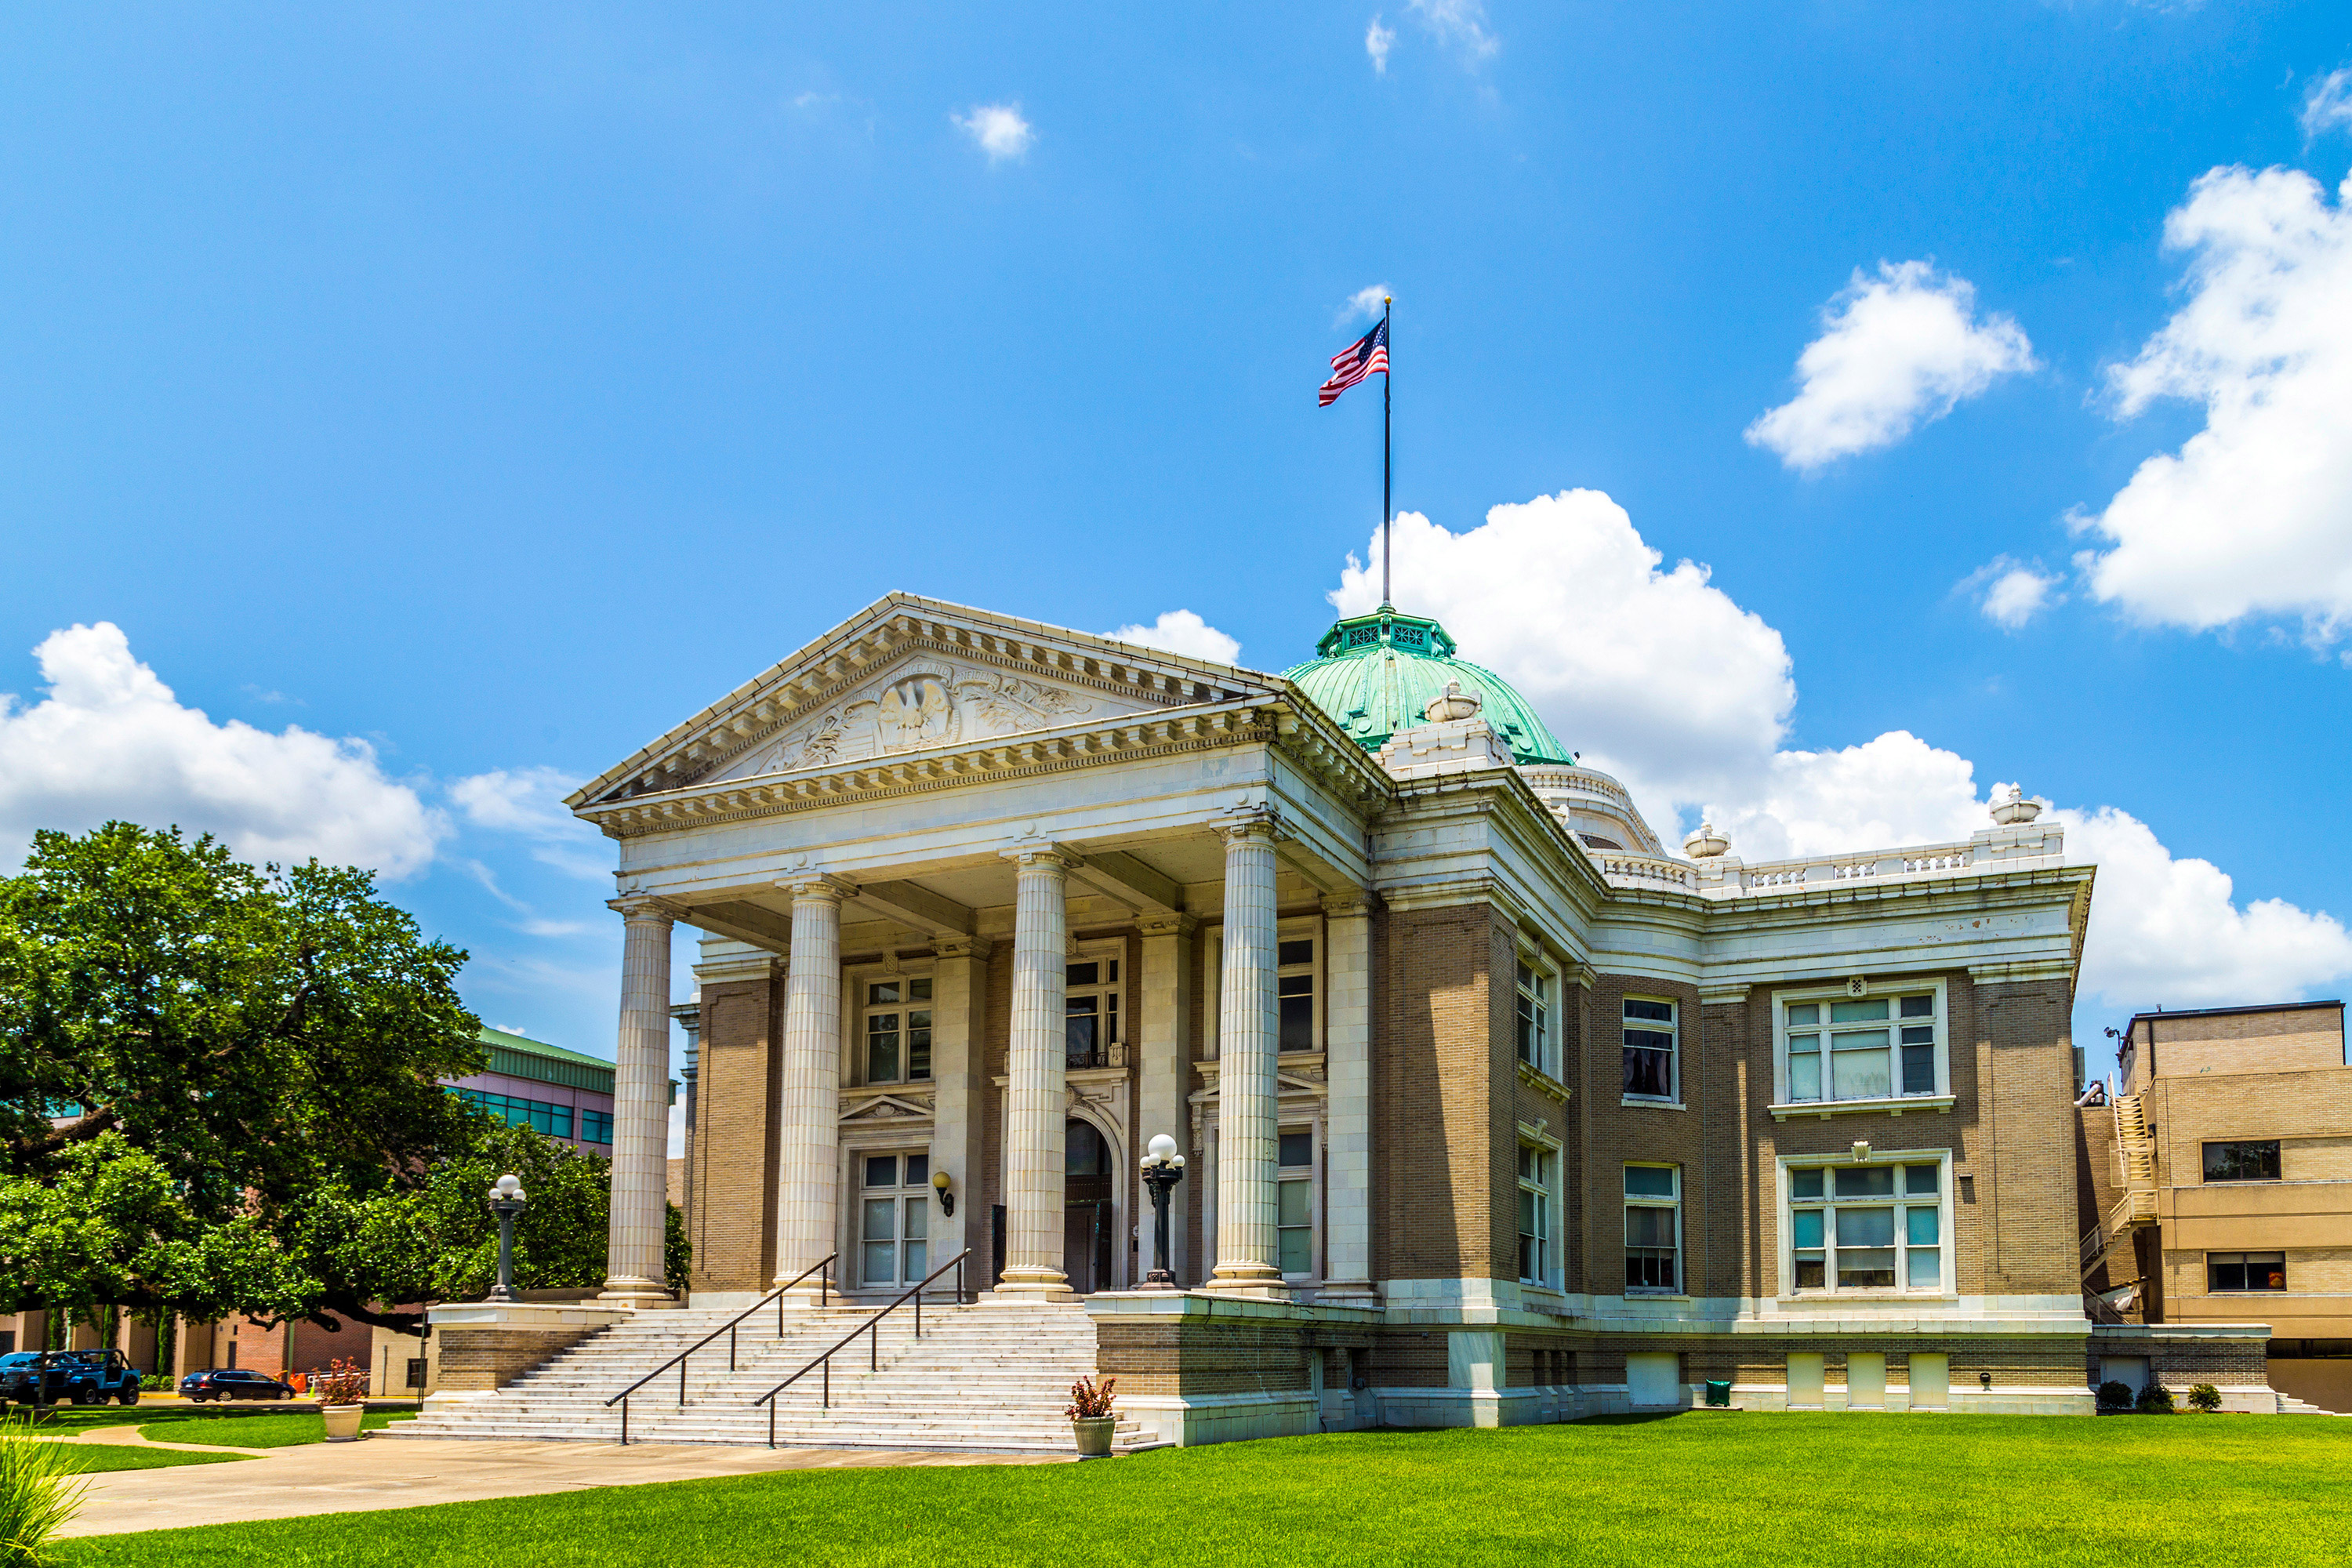 Lake Charles courthouse